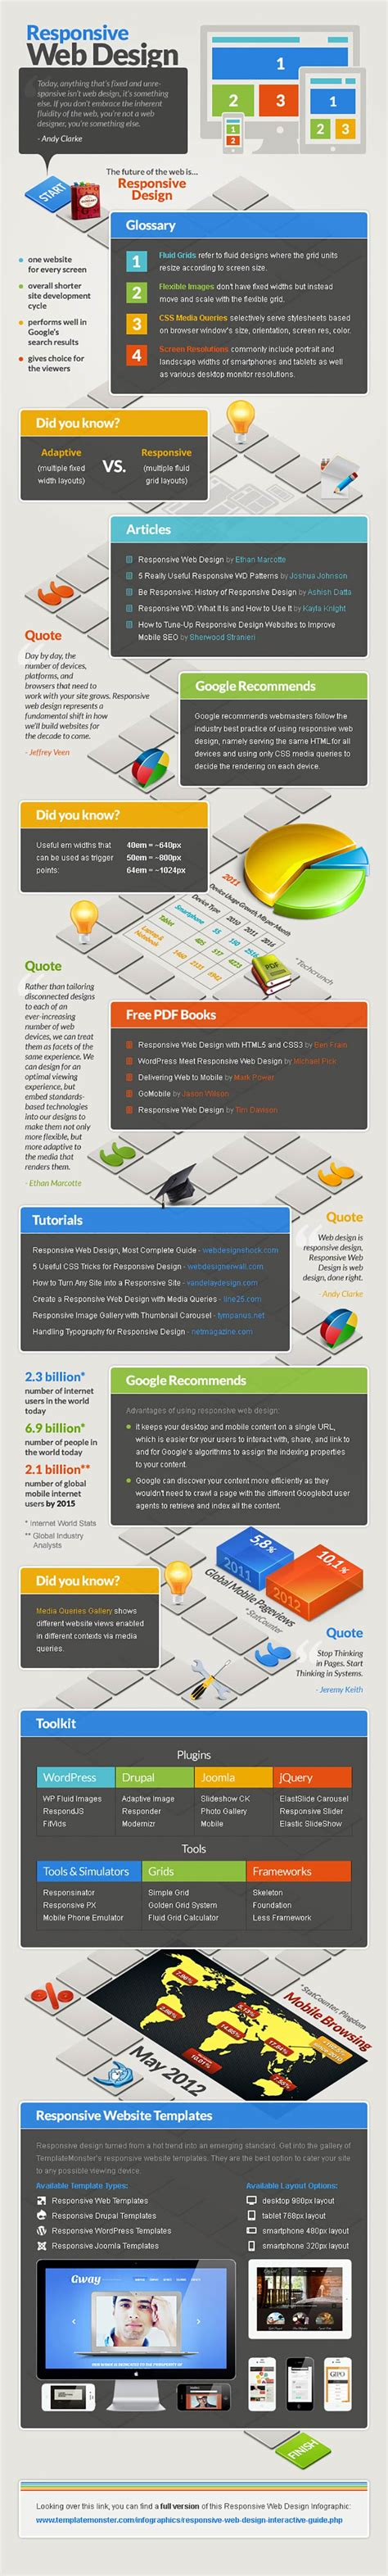 responsive web design infographic responsive web design for churches reachright